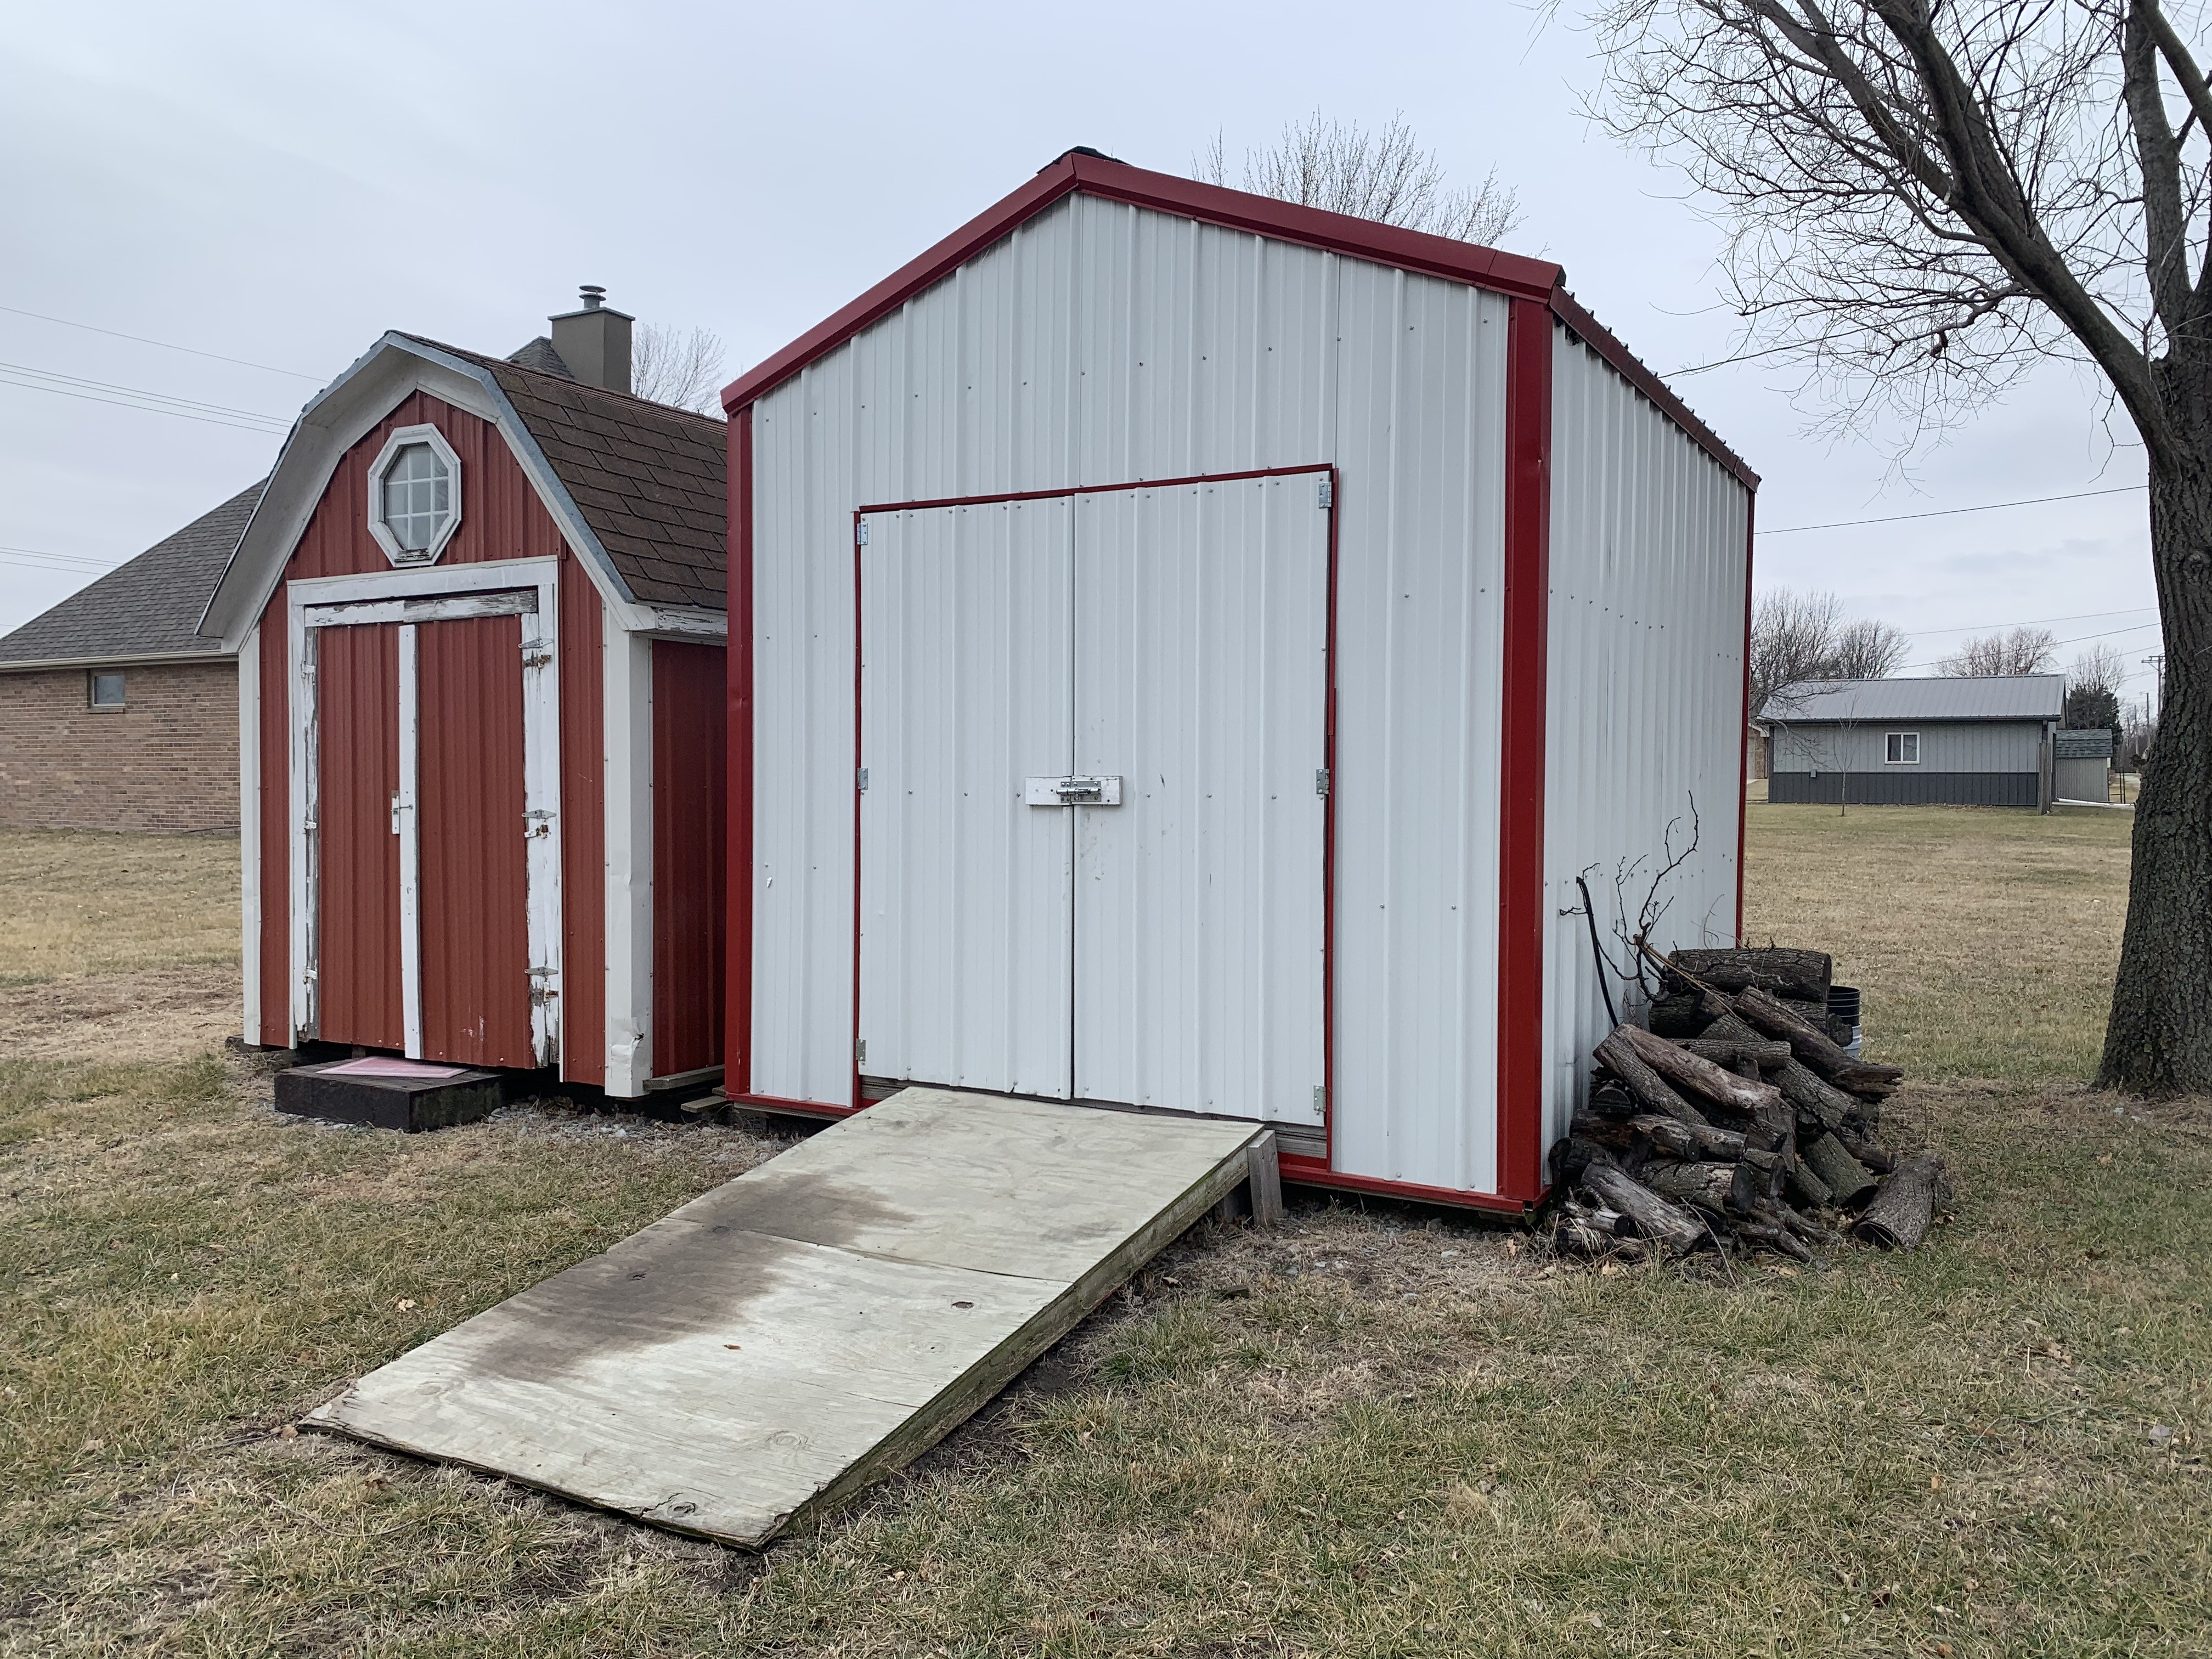 212 S 11th Sheds